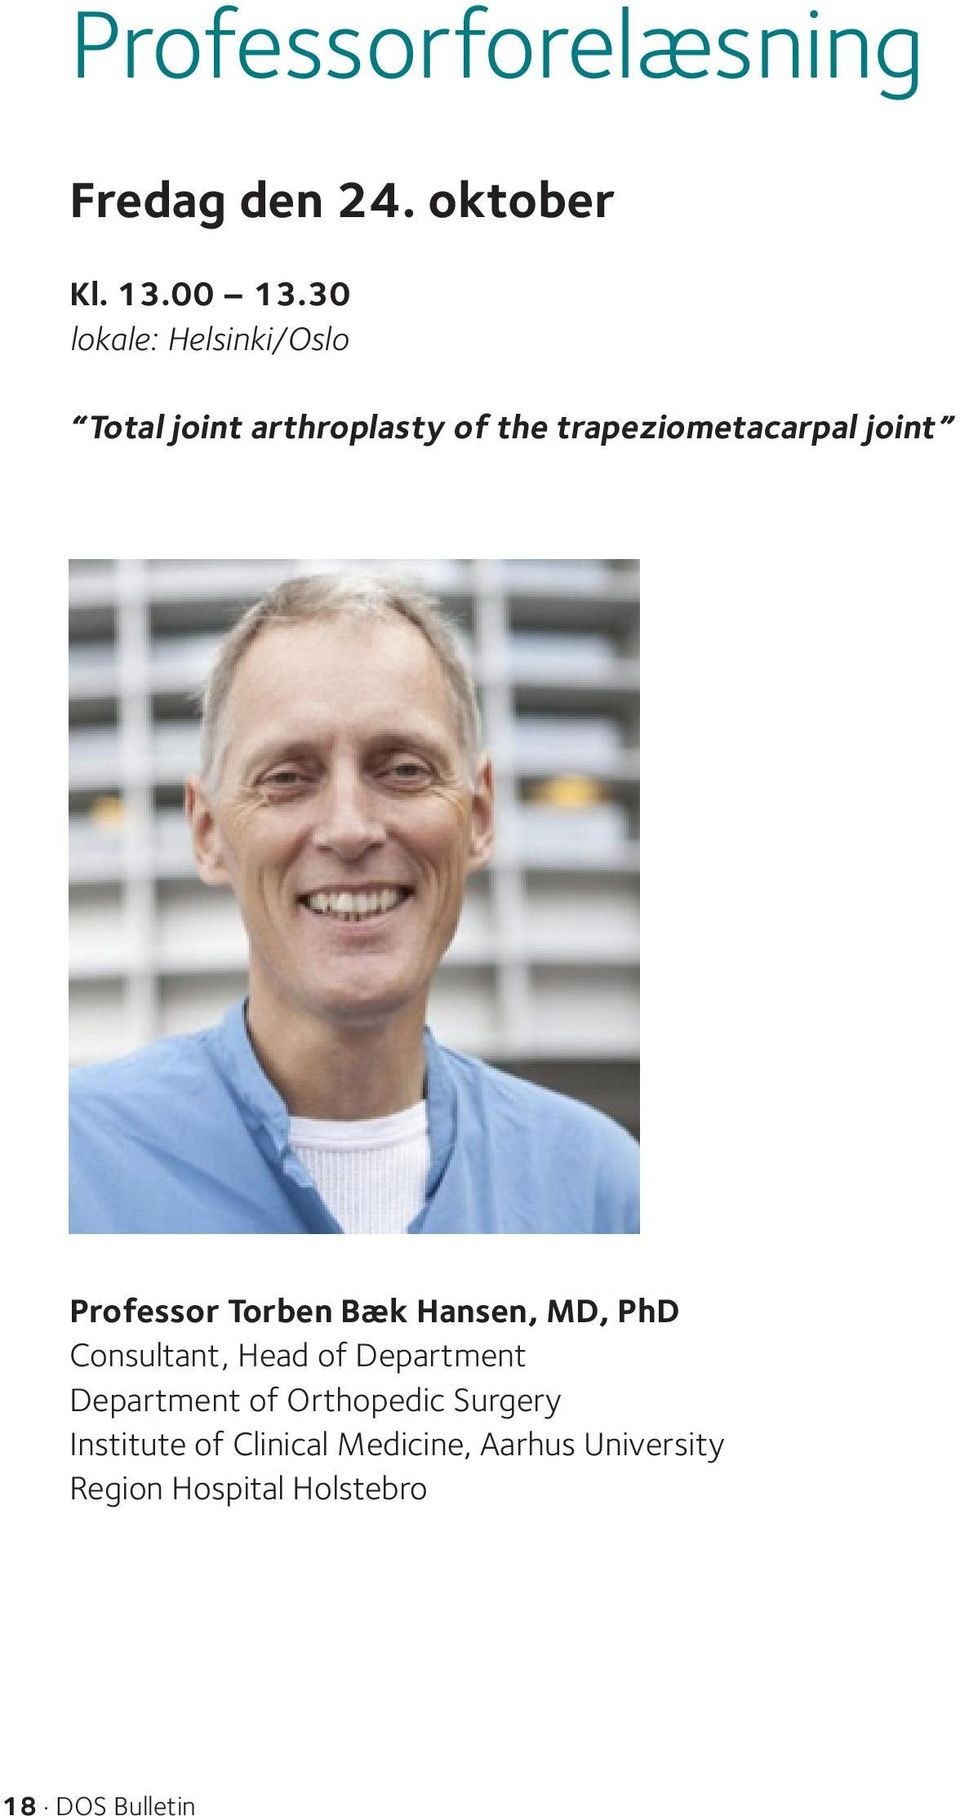 Professor Torben Bæk Hansen, MD, PhD Consultant, Head of Department Department of